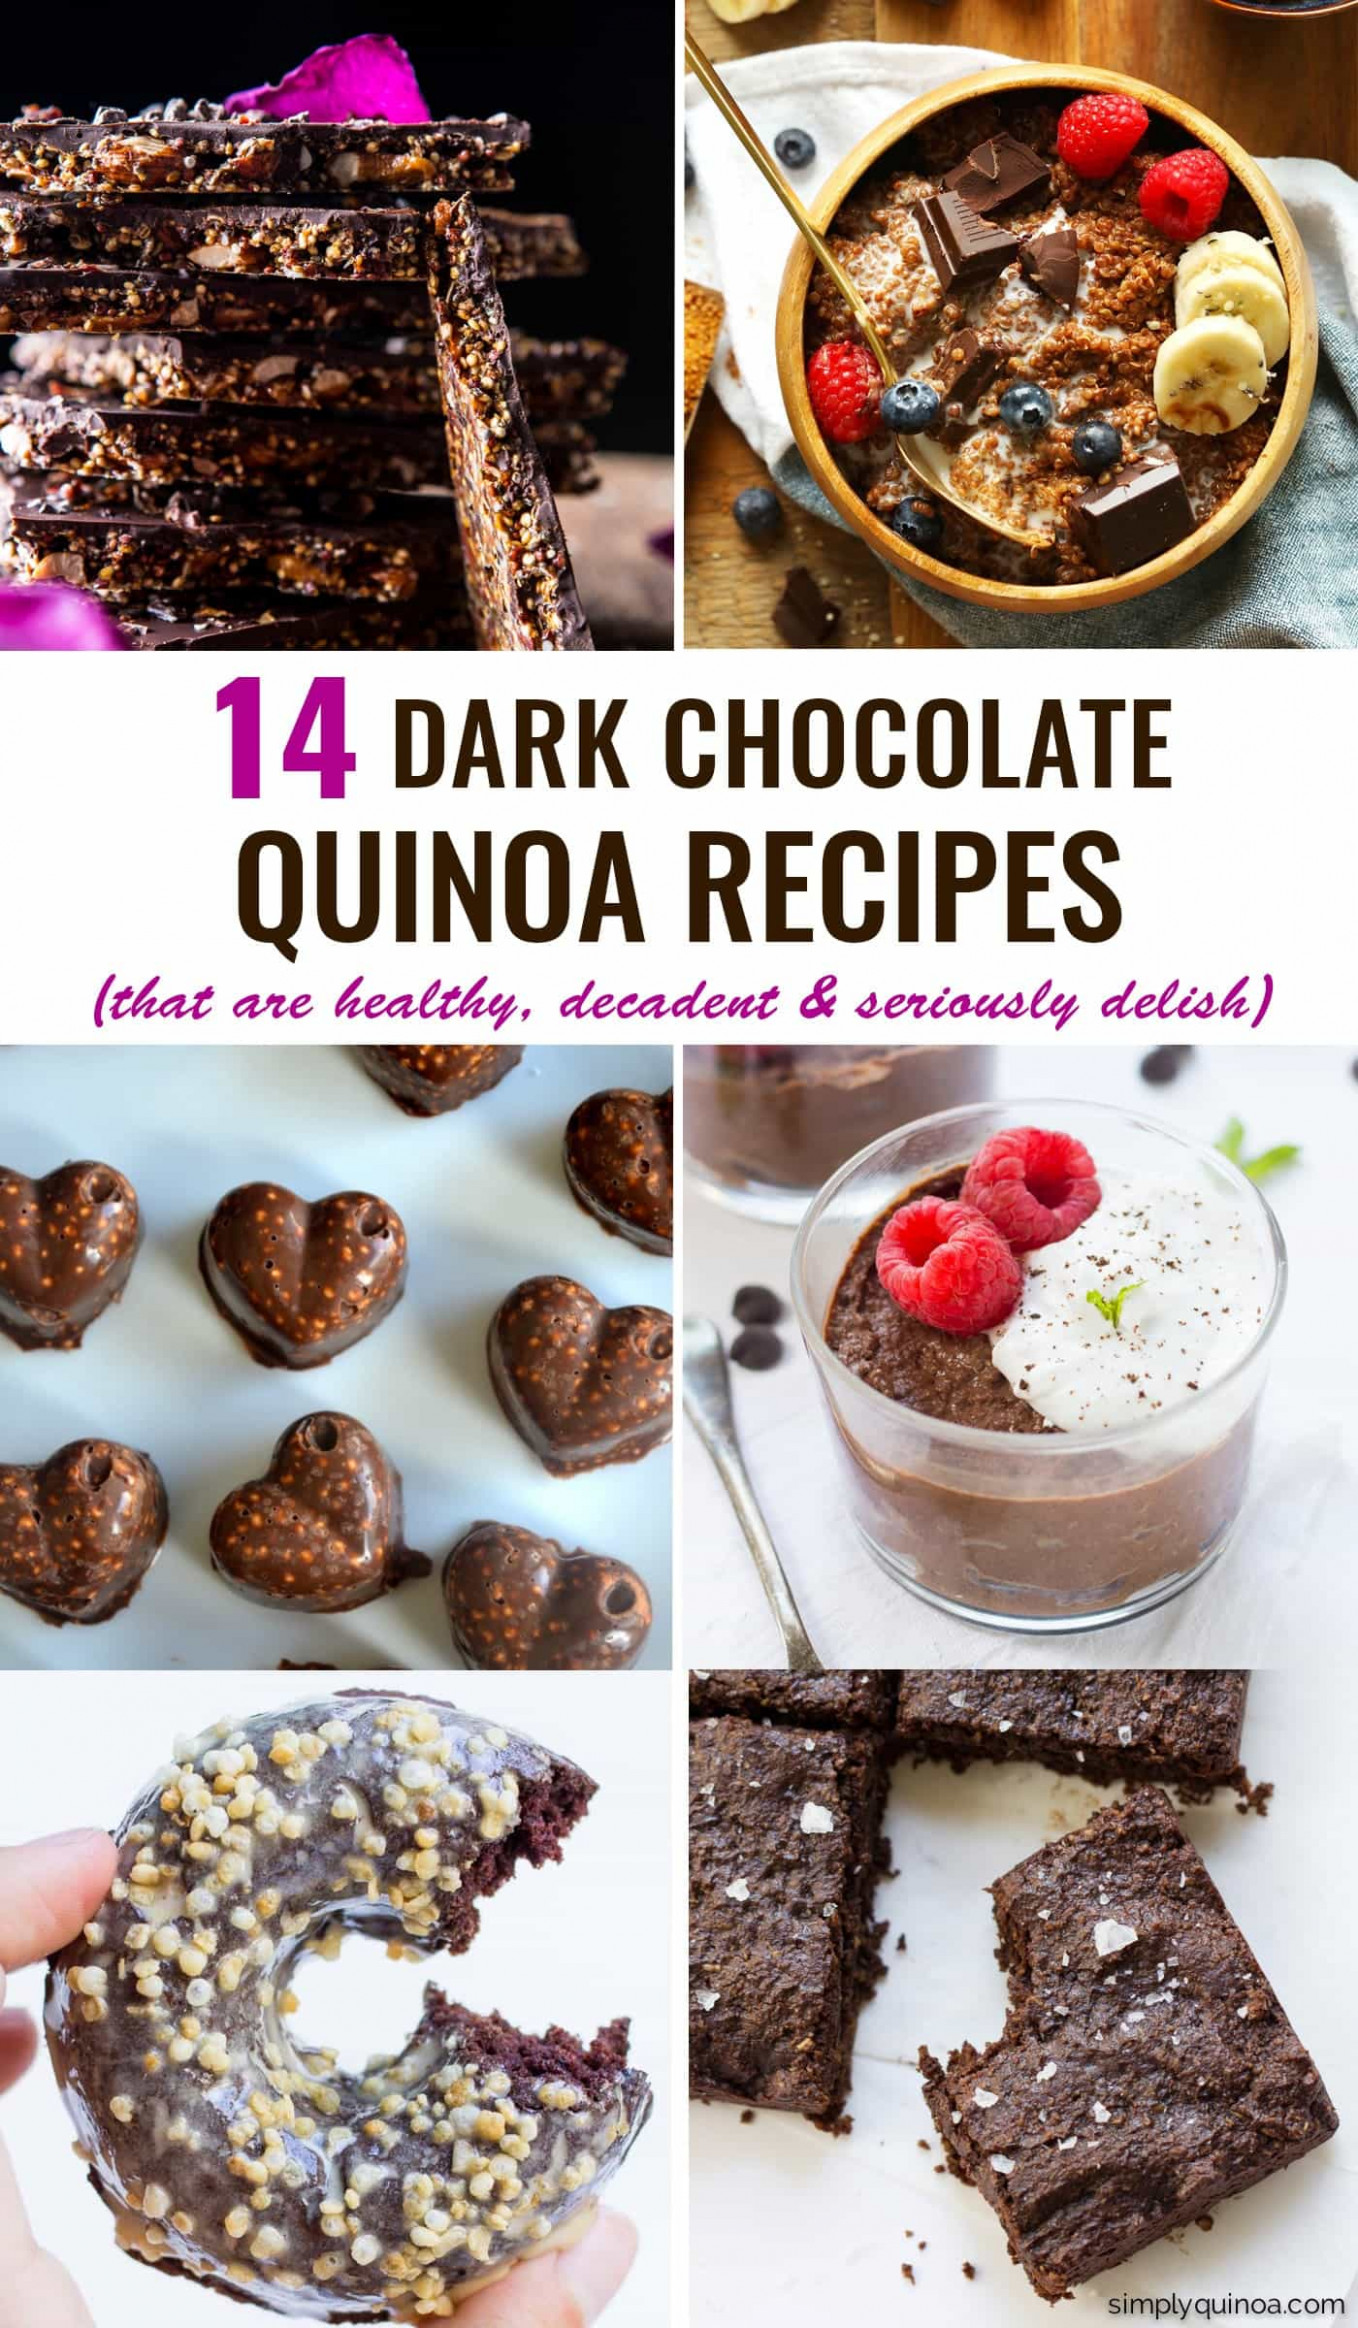 The 14 Best Chocolate Quinoa Recipes - Simply Quinoa - healthy quinoa recipes